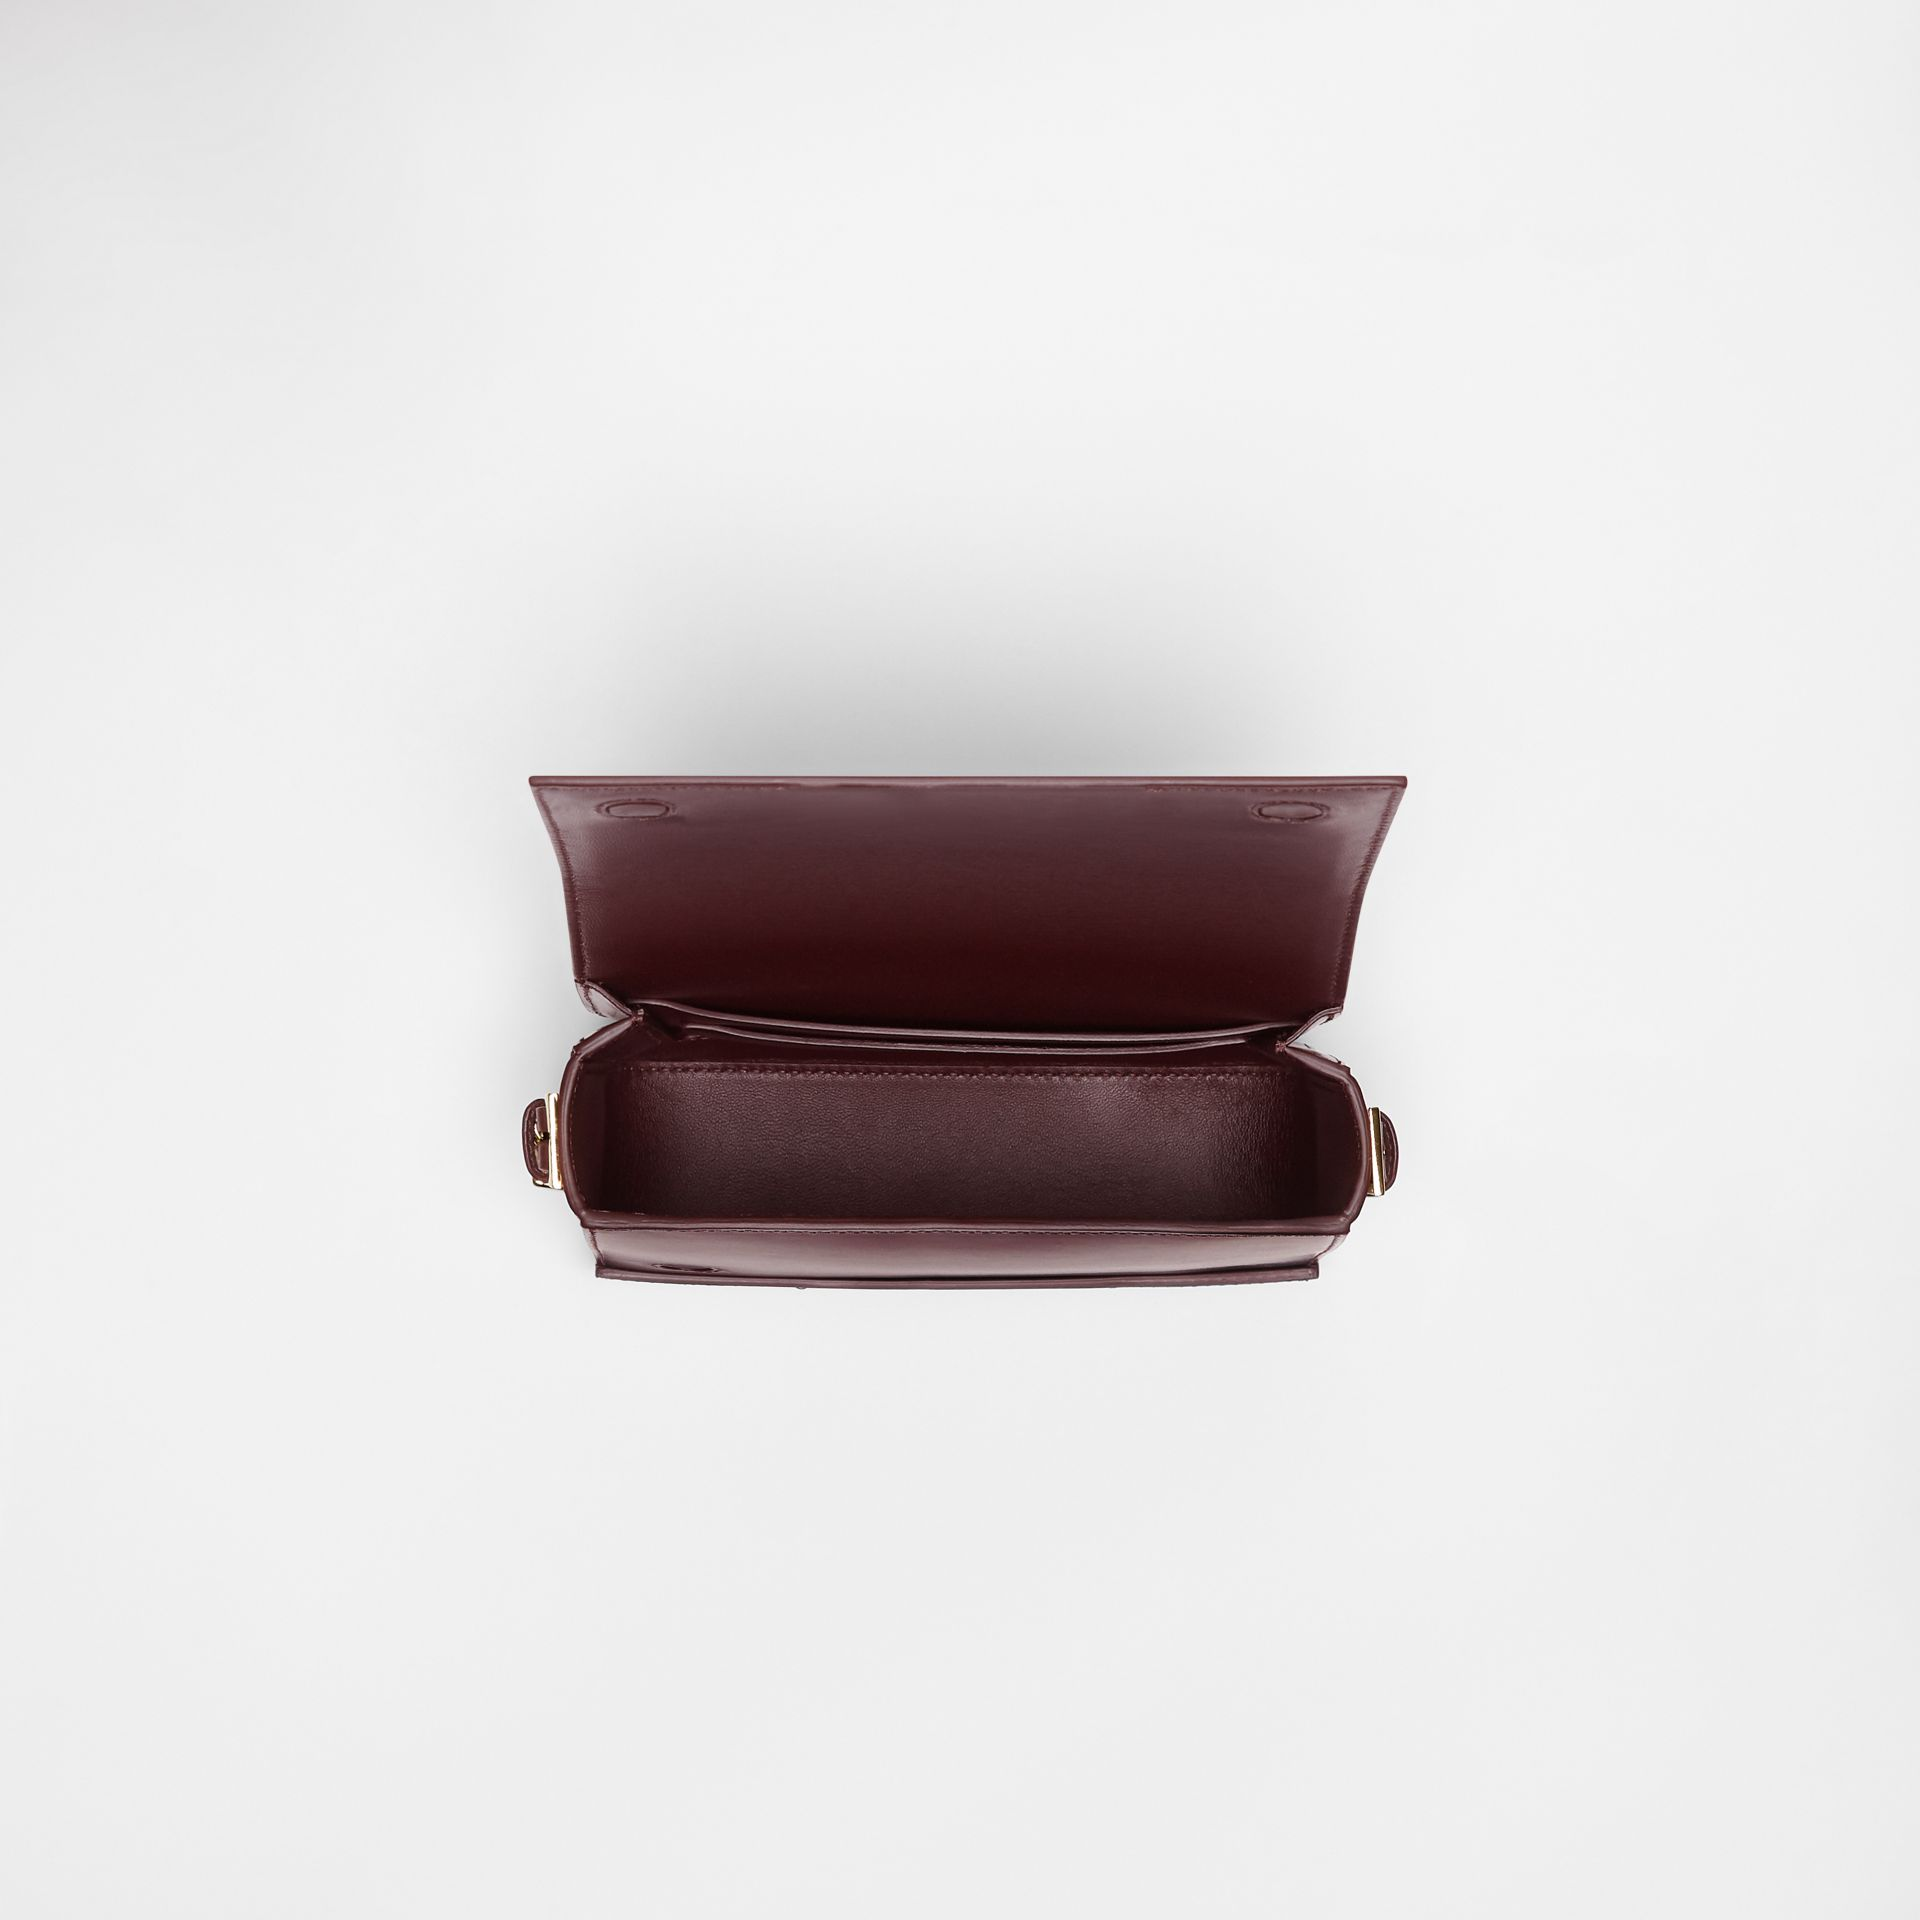 Petit sac Grace en cuir (Oxblood) - Femme | Burberry - photo de la galerie 4